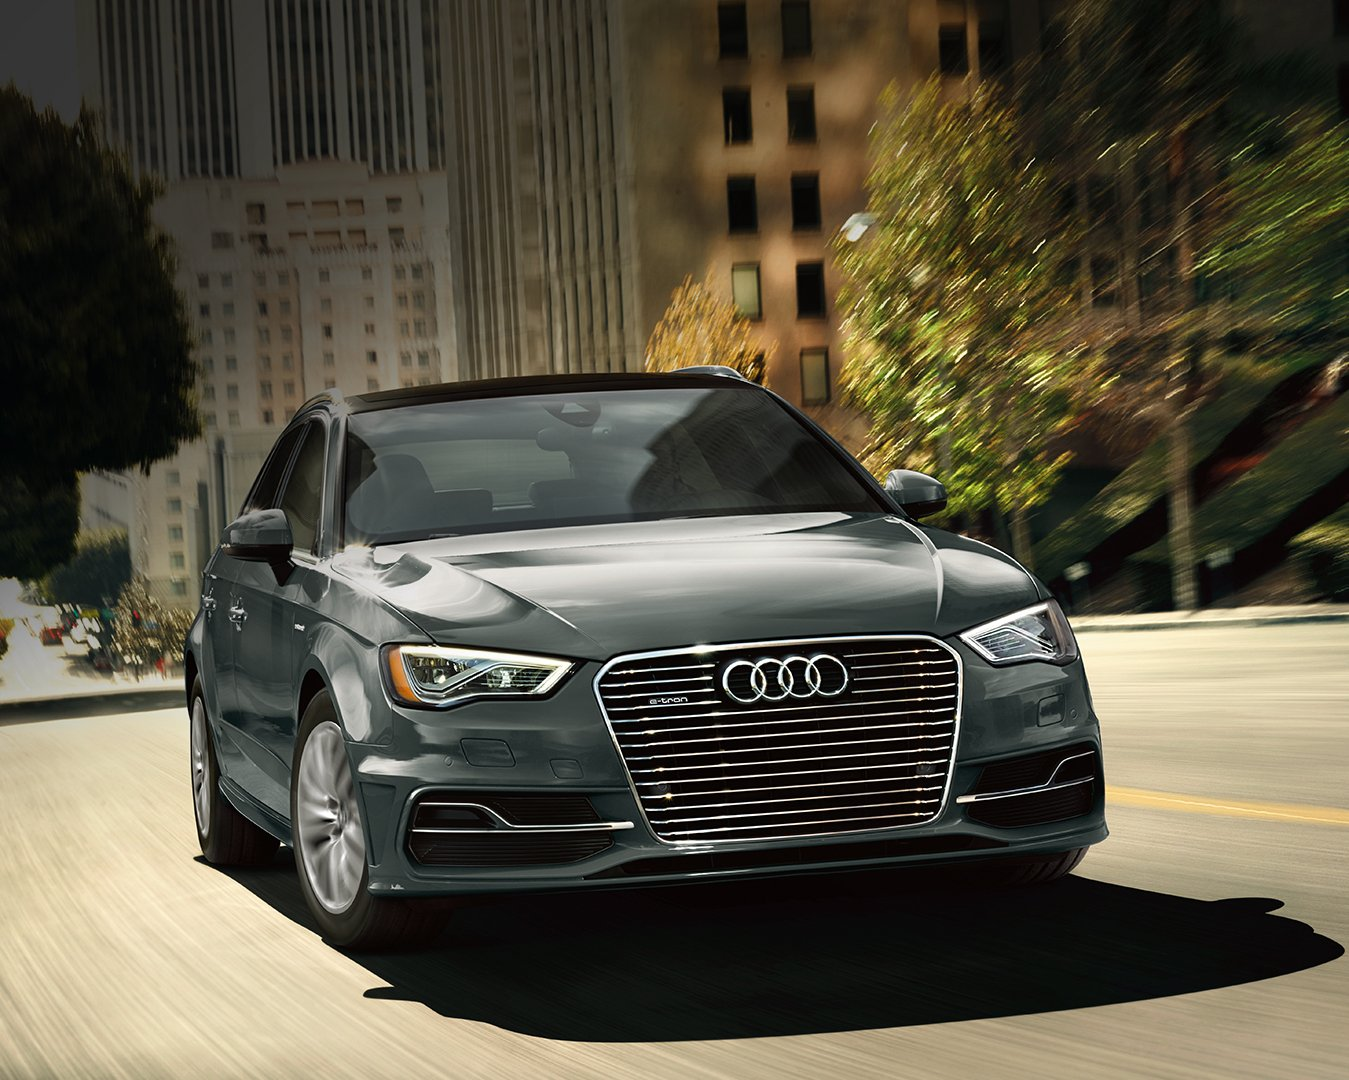 revolutionary plug in hybrid 2016 audi a3 e tron 1692 cars performance reviews and test drive. Black Bedroom Furniture Sets. Home Design Ideas